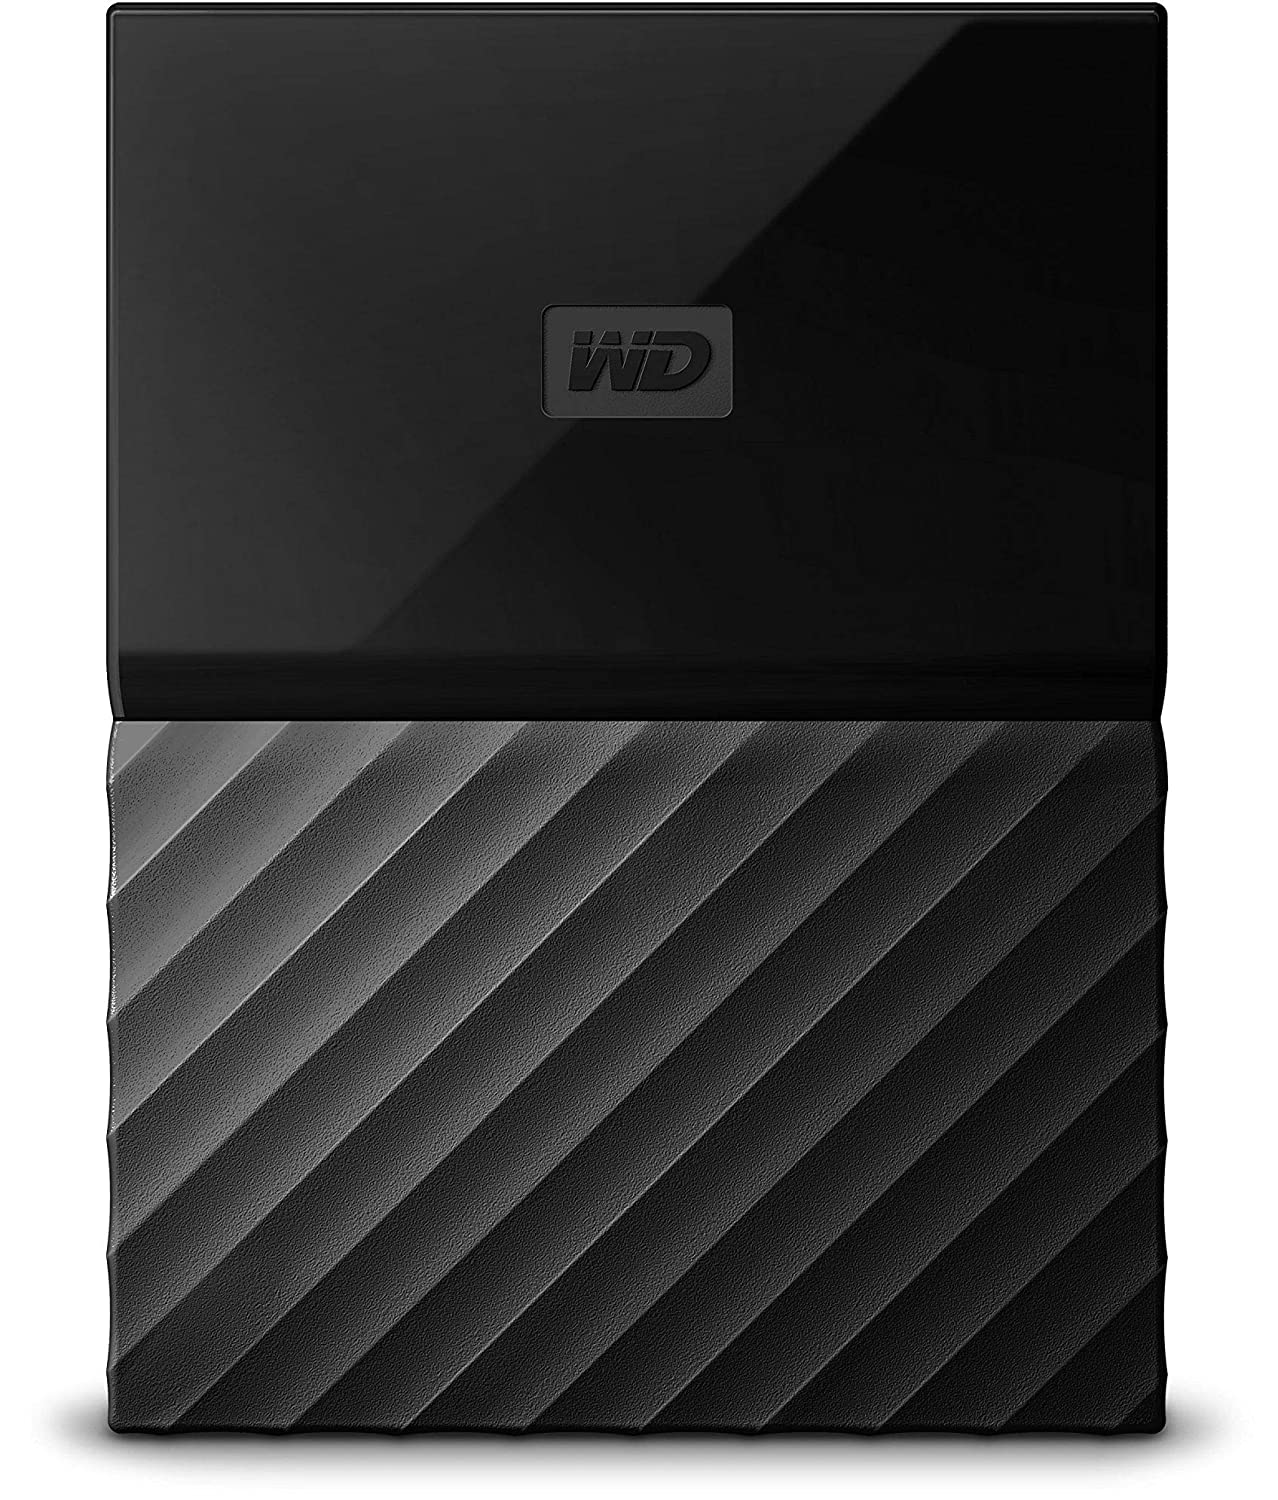 Western Digital My Passport 2TB External Hard Drive (Black)